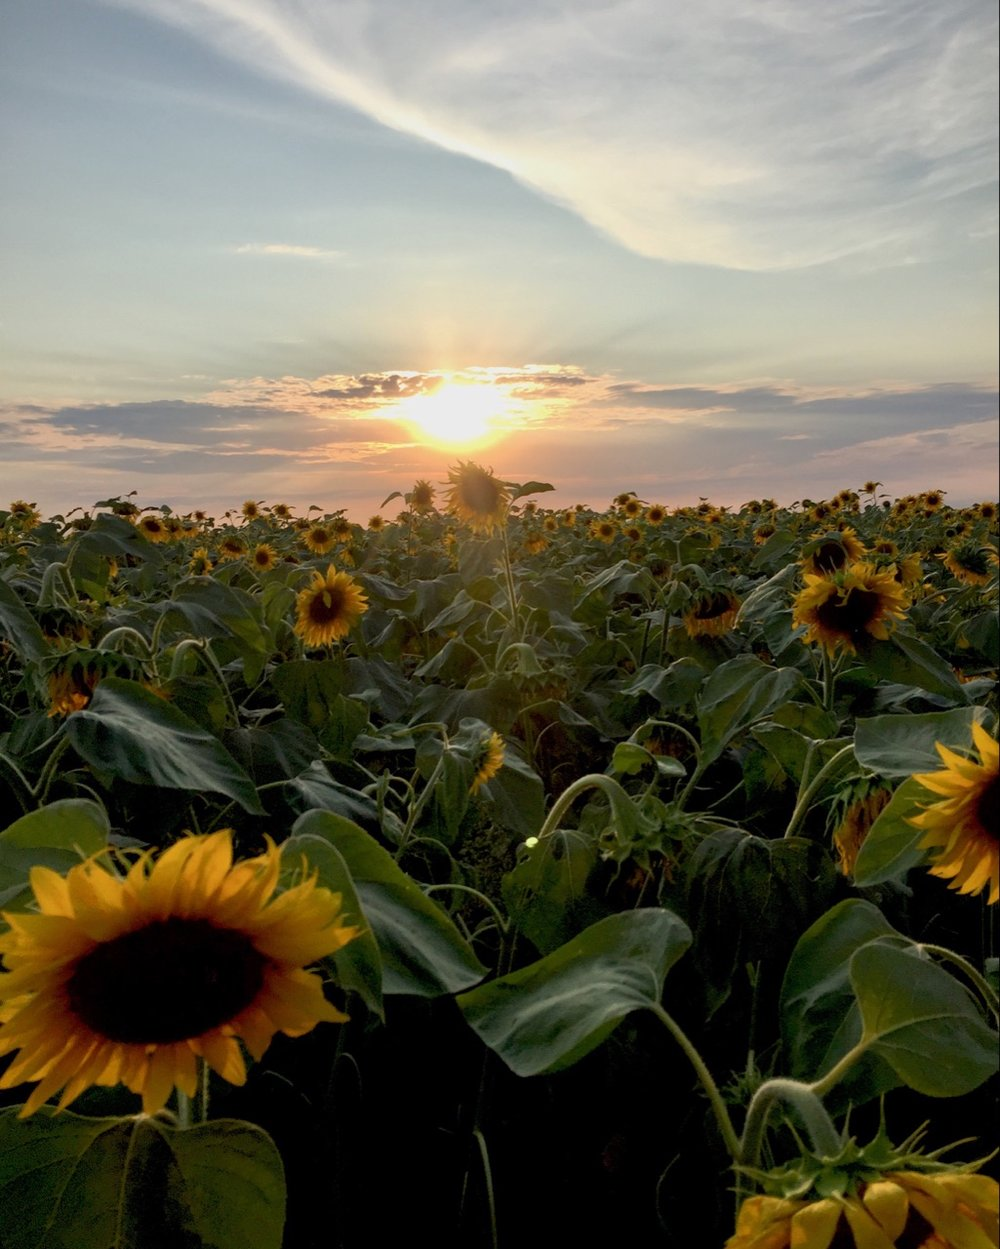 Famous Ukrainian 'oceans of sunflowers' on the east border with Russia (photo by the author)